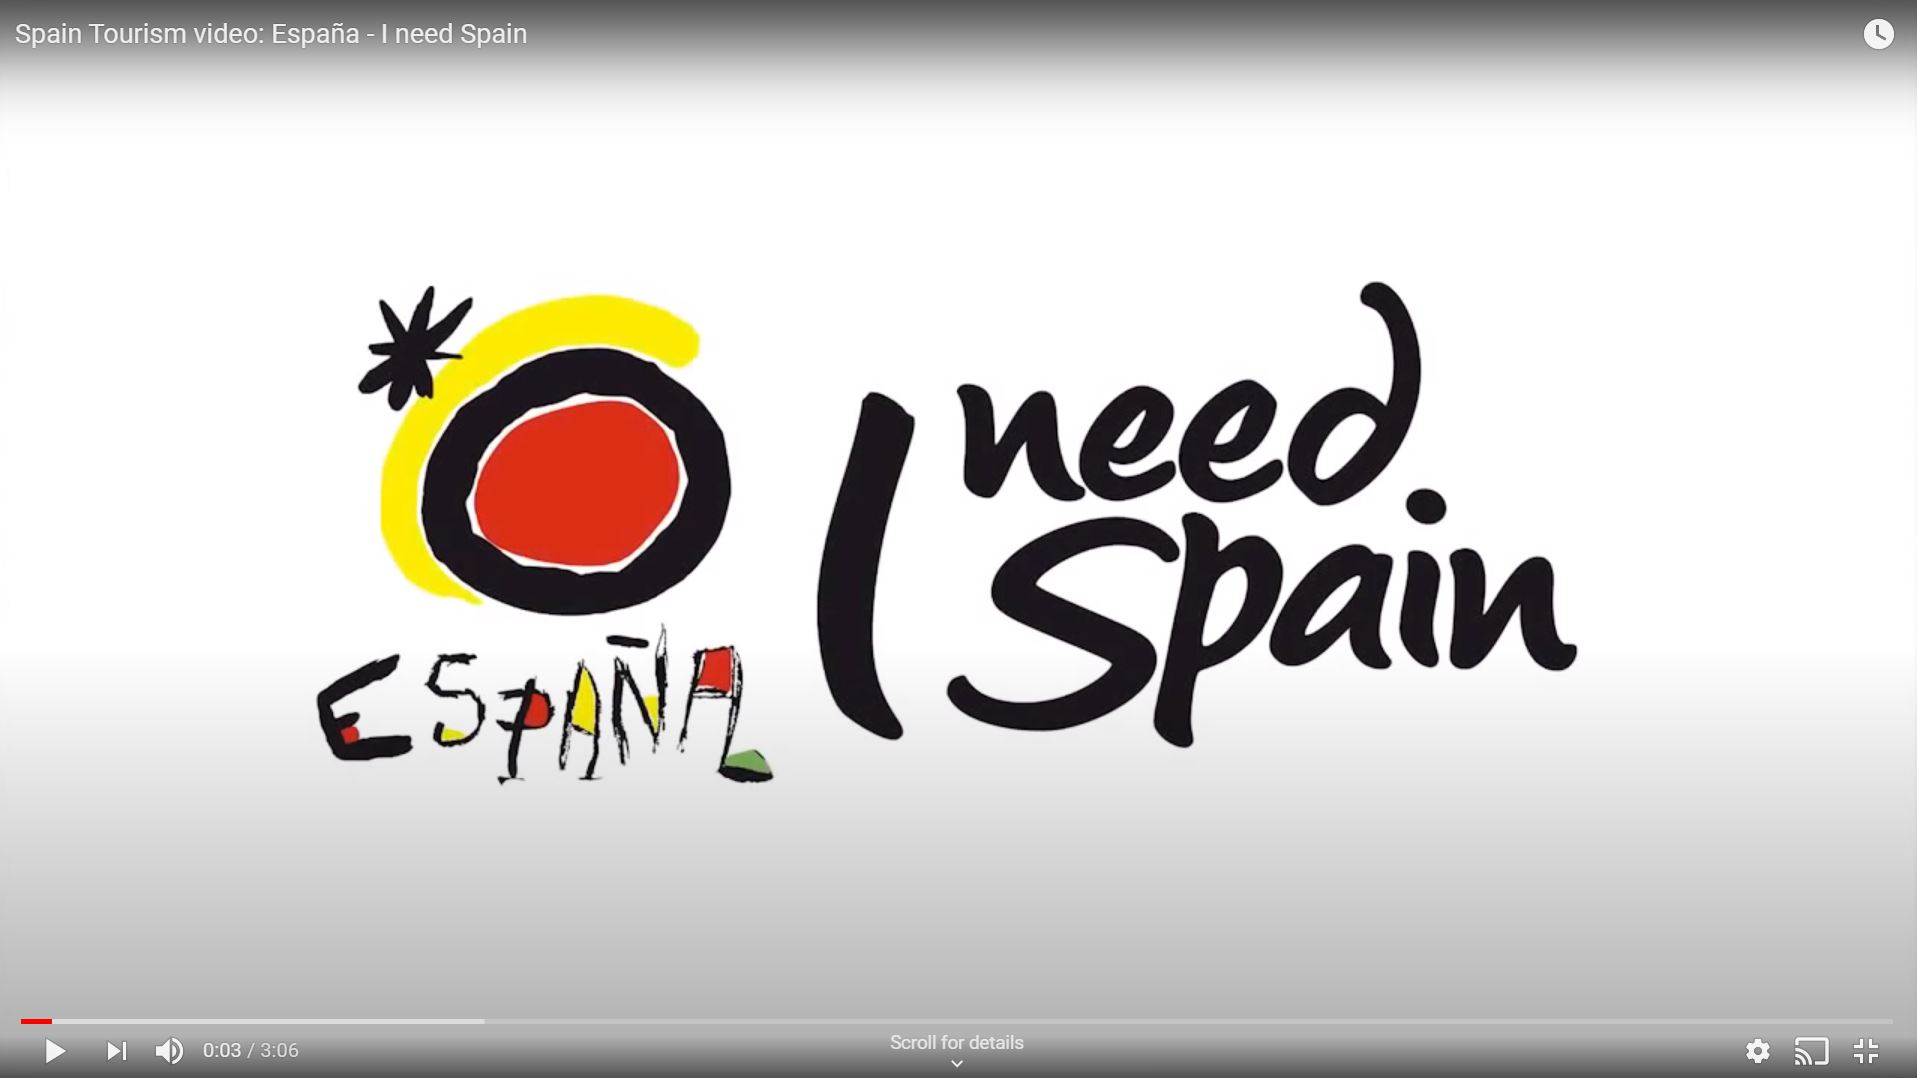 I NEED SPAIN - SPANISH TOURIST BOARD